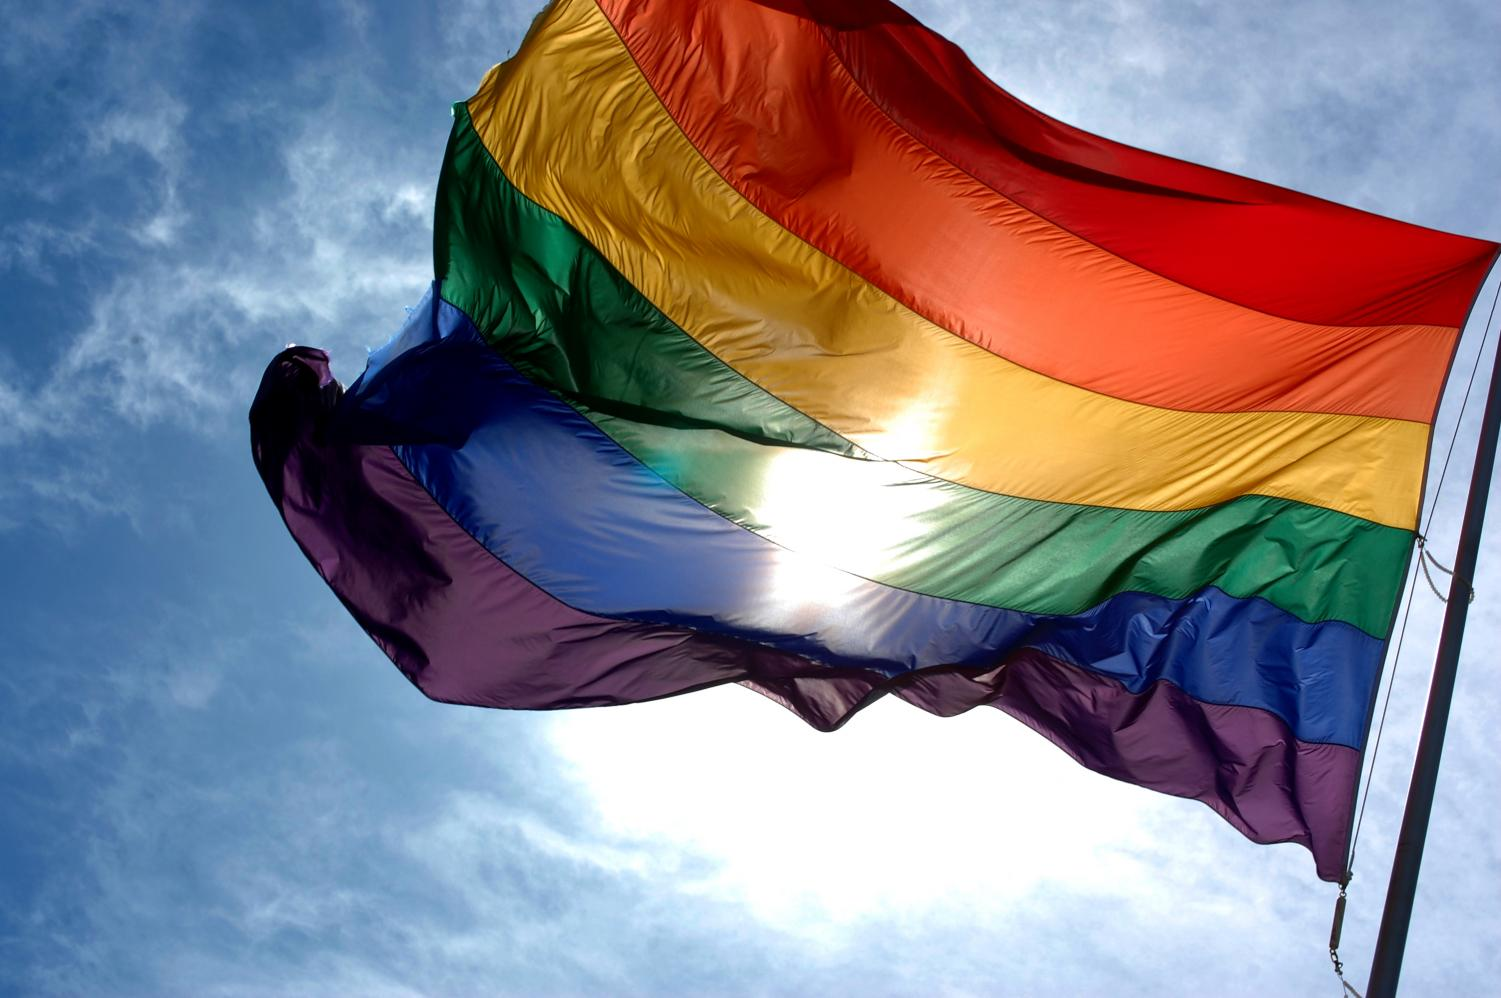 LGBTQ+ is one of the many topics C.A.R.E discusses.